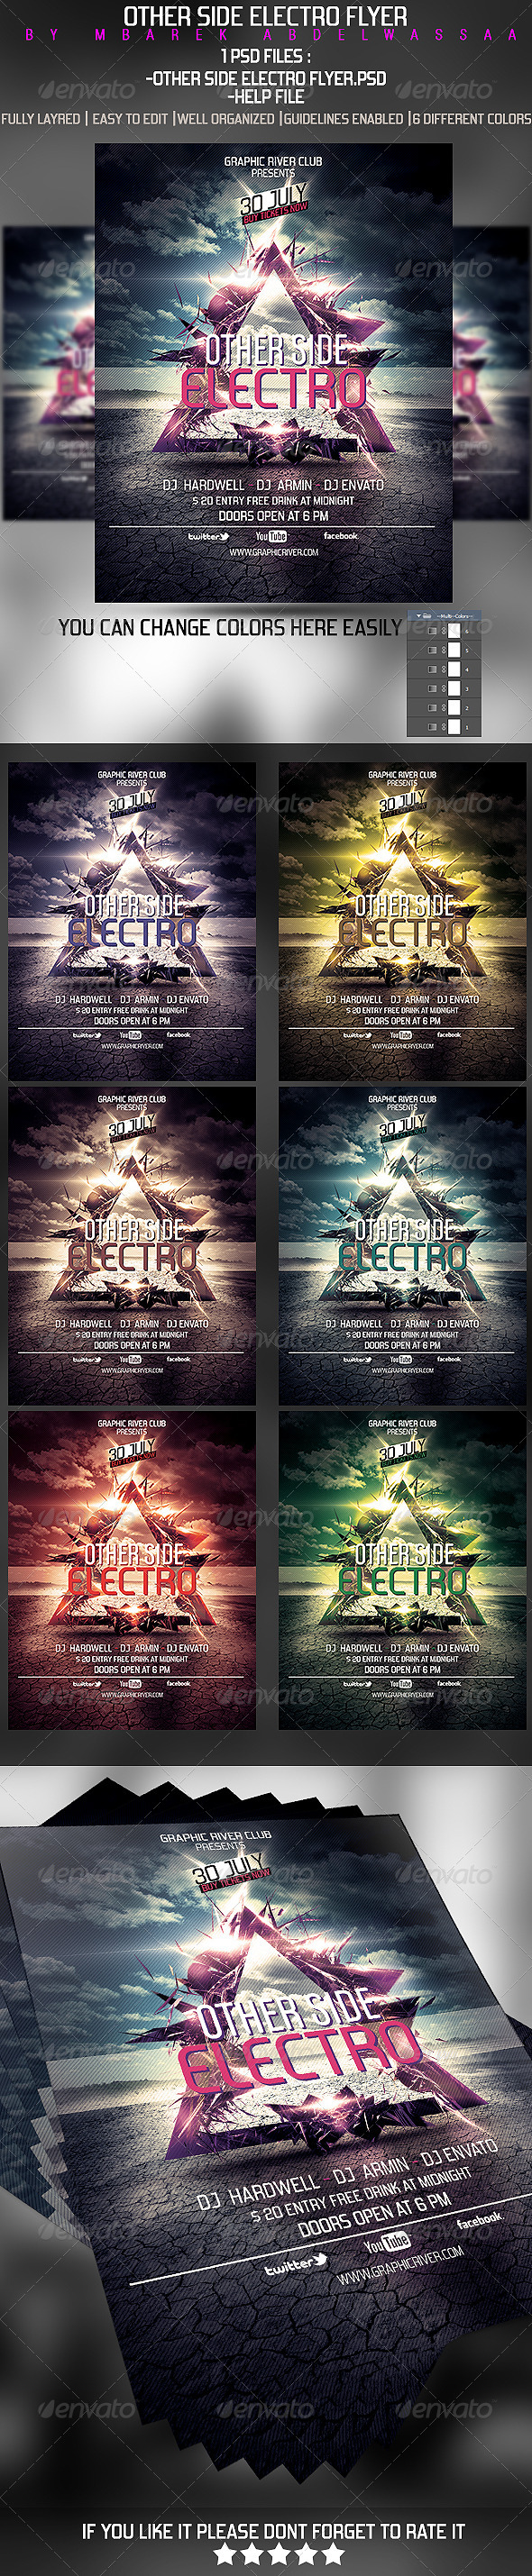 GraphicRiver Other Side Electro Flyer 5473071